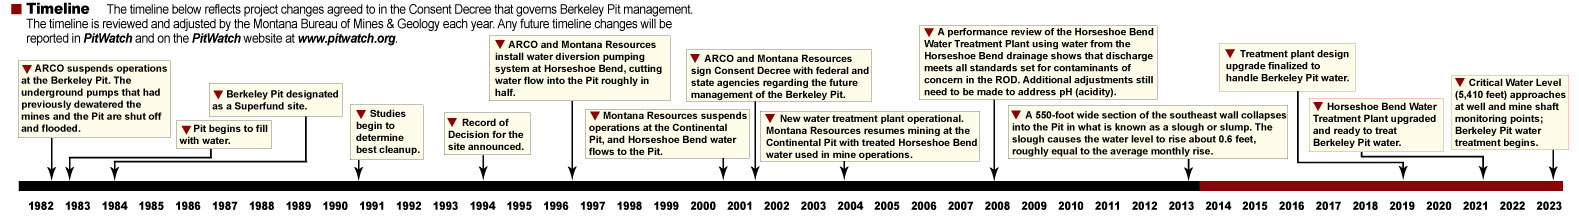 This timeline reflects project changes agreed to in the Consent Decree that governs Berkeley Pit management. The timeline is reviewed and adjusted by the Montana Bureau of Mines & Geology each year. Any future timeline changes will be reported in PitWatch and on the PitWatch website at www.pitwatch.org. Graphic by Justin Ringsak.